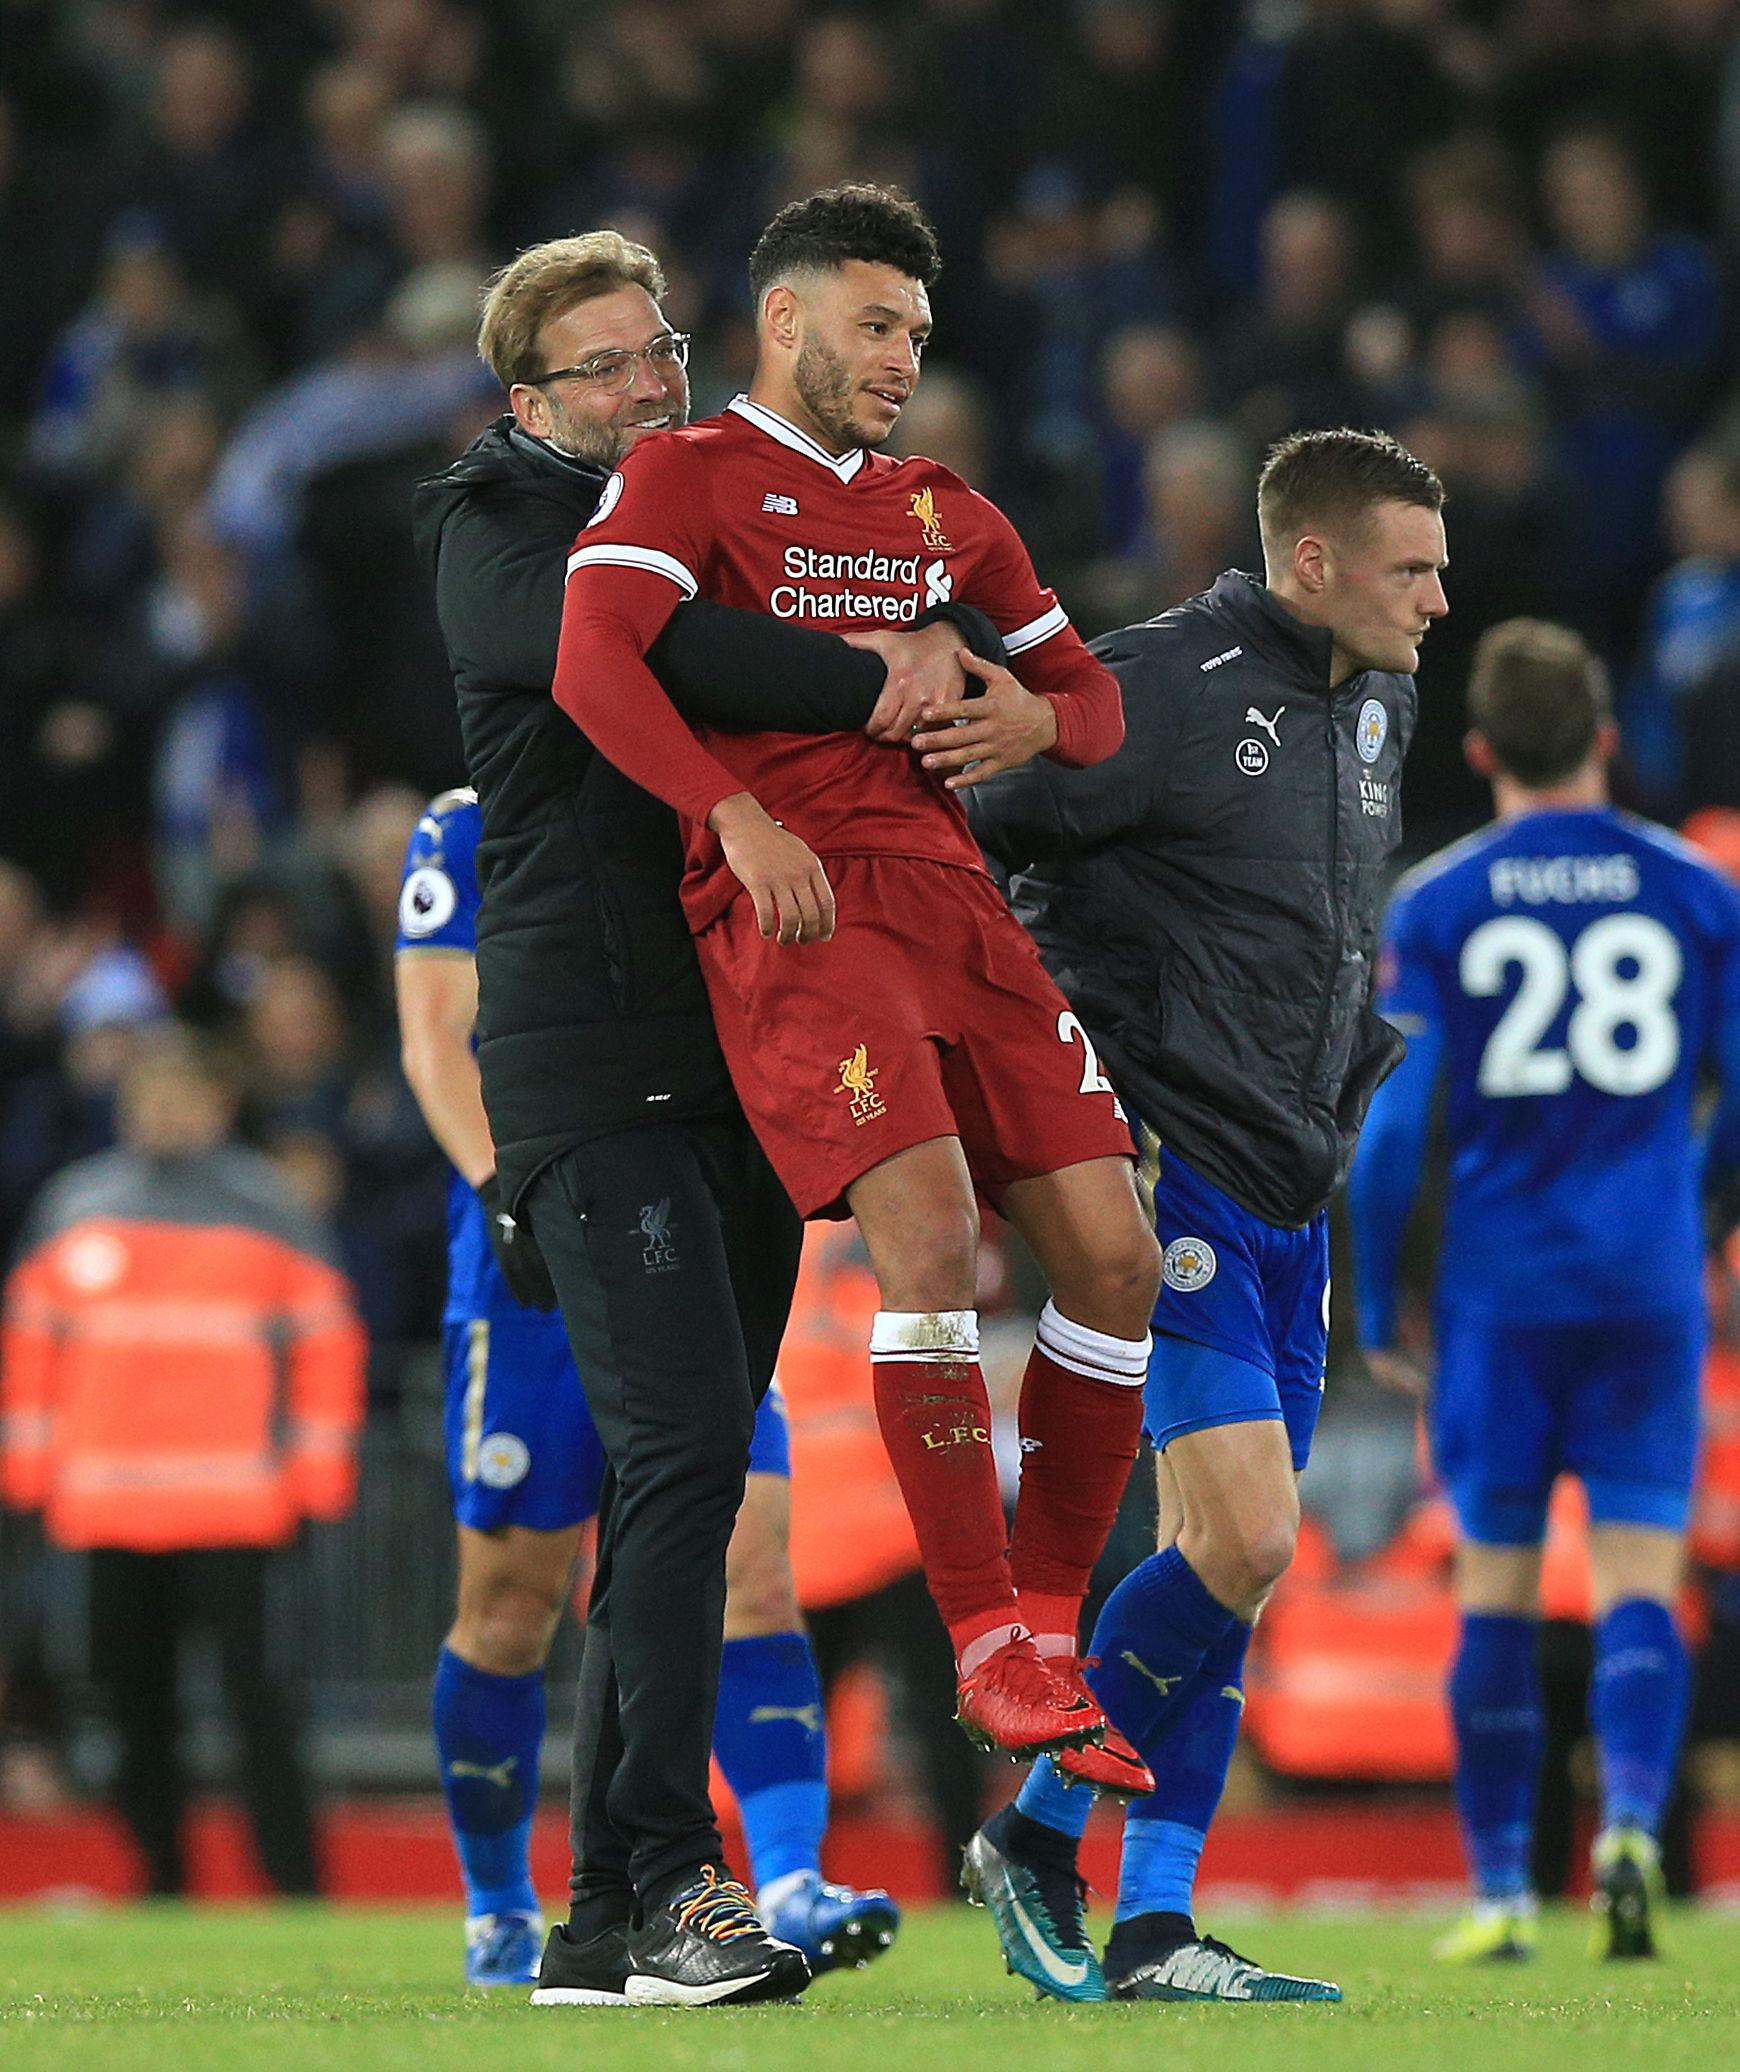 The Ox is literally *carrying* that team